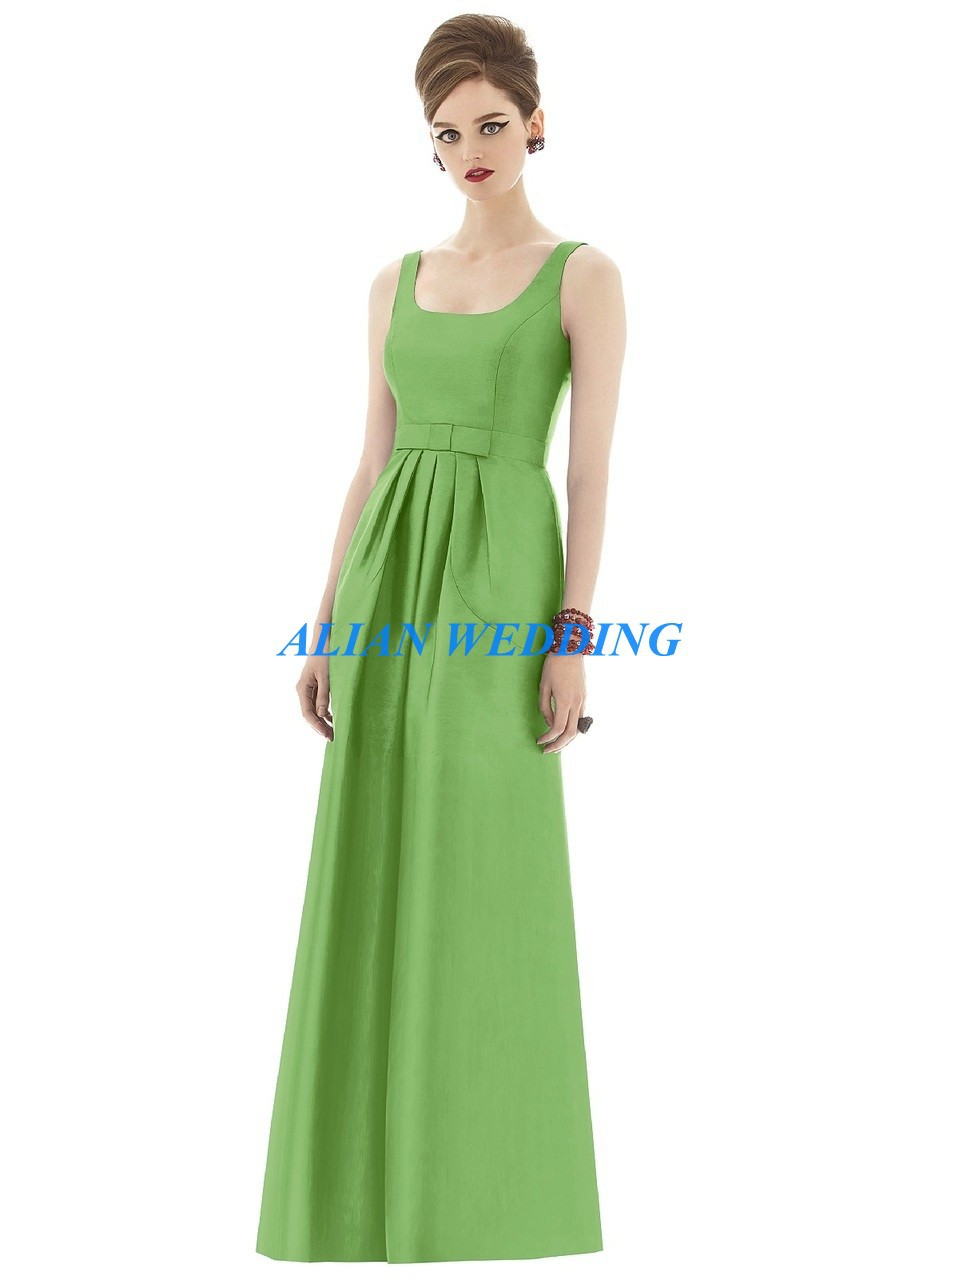 tabitha gown green wedding dresses Tabitha Gown Green Wedding Shoes Weddings Fashion Lifestyle Trave